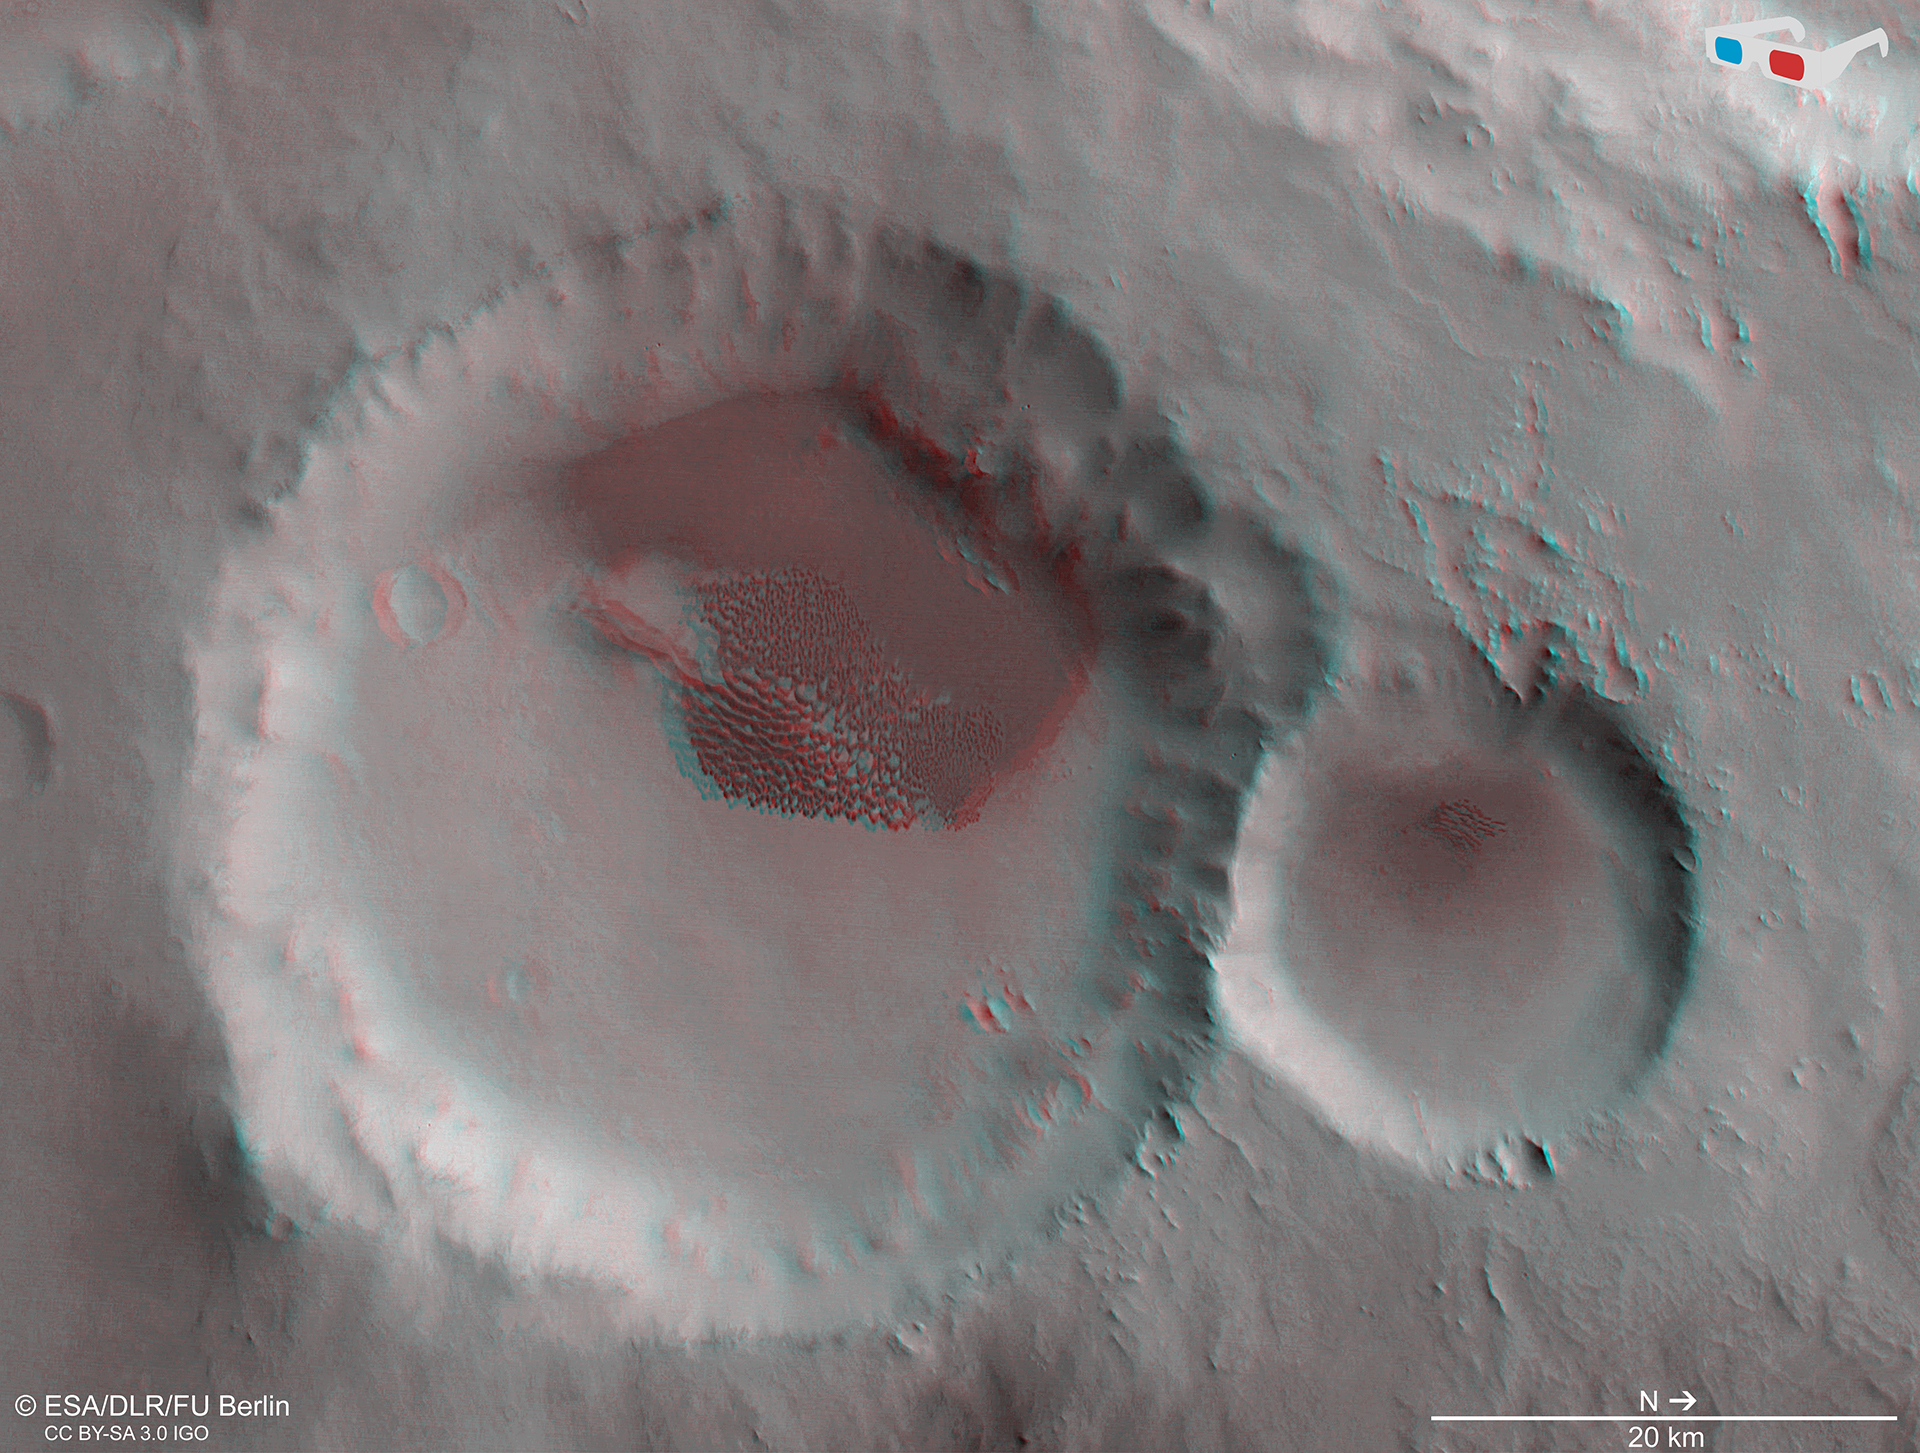 The dune-filled crater rendered in 3D (ESA/DLR/FU Berlin)